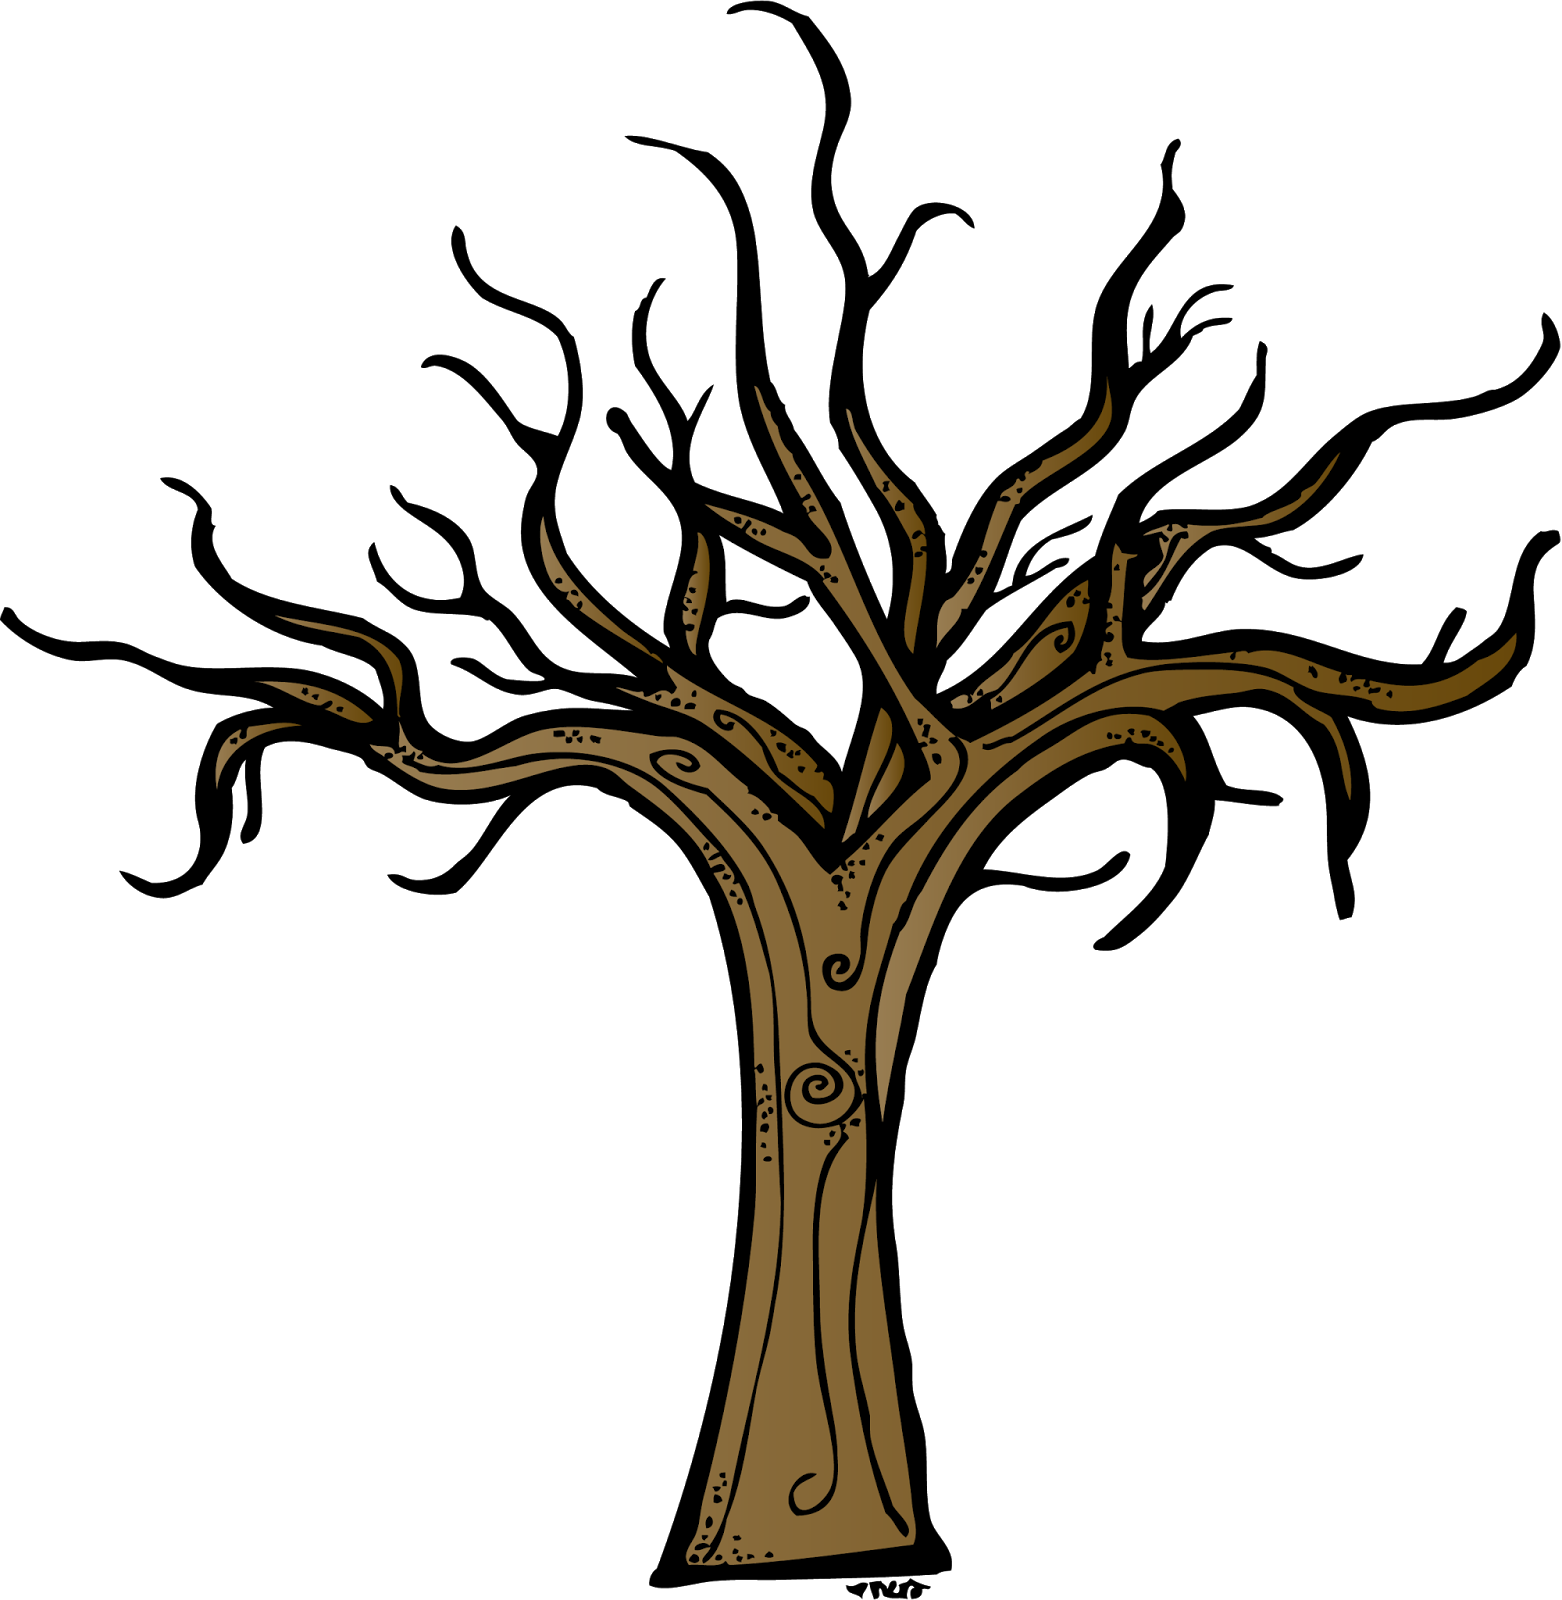 Dead Tree clipart #17, Download drawings